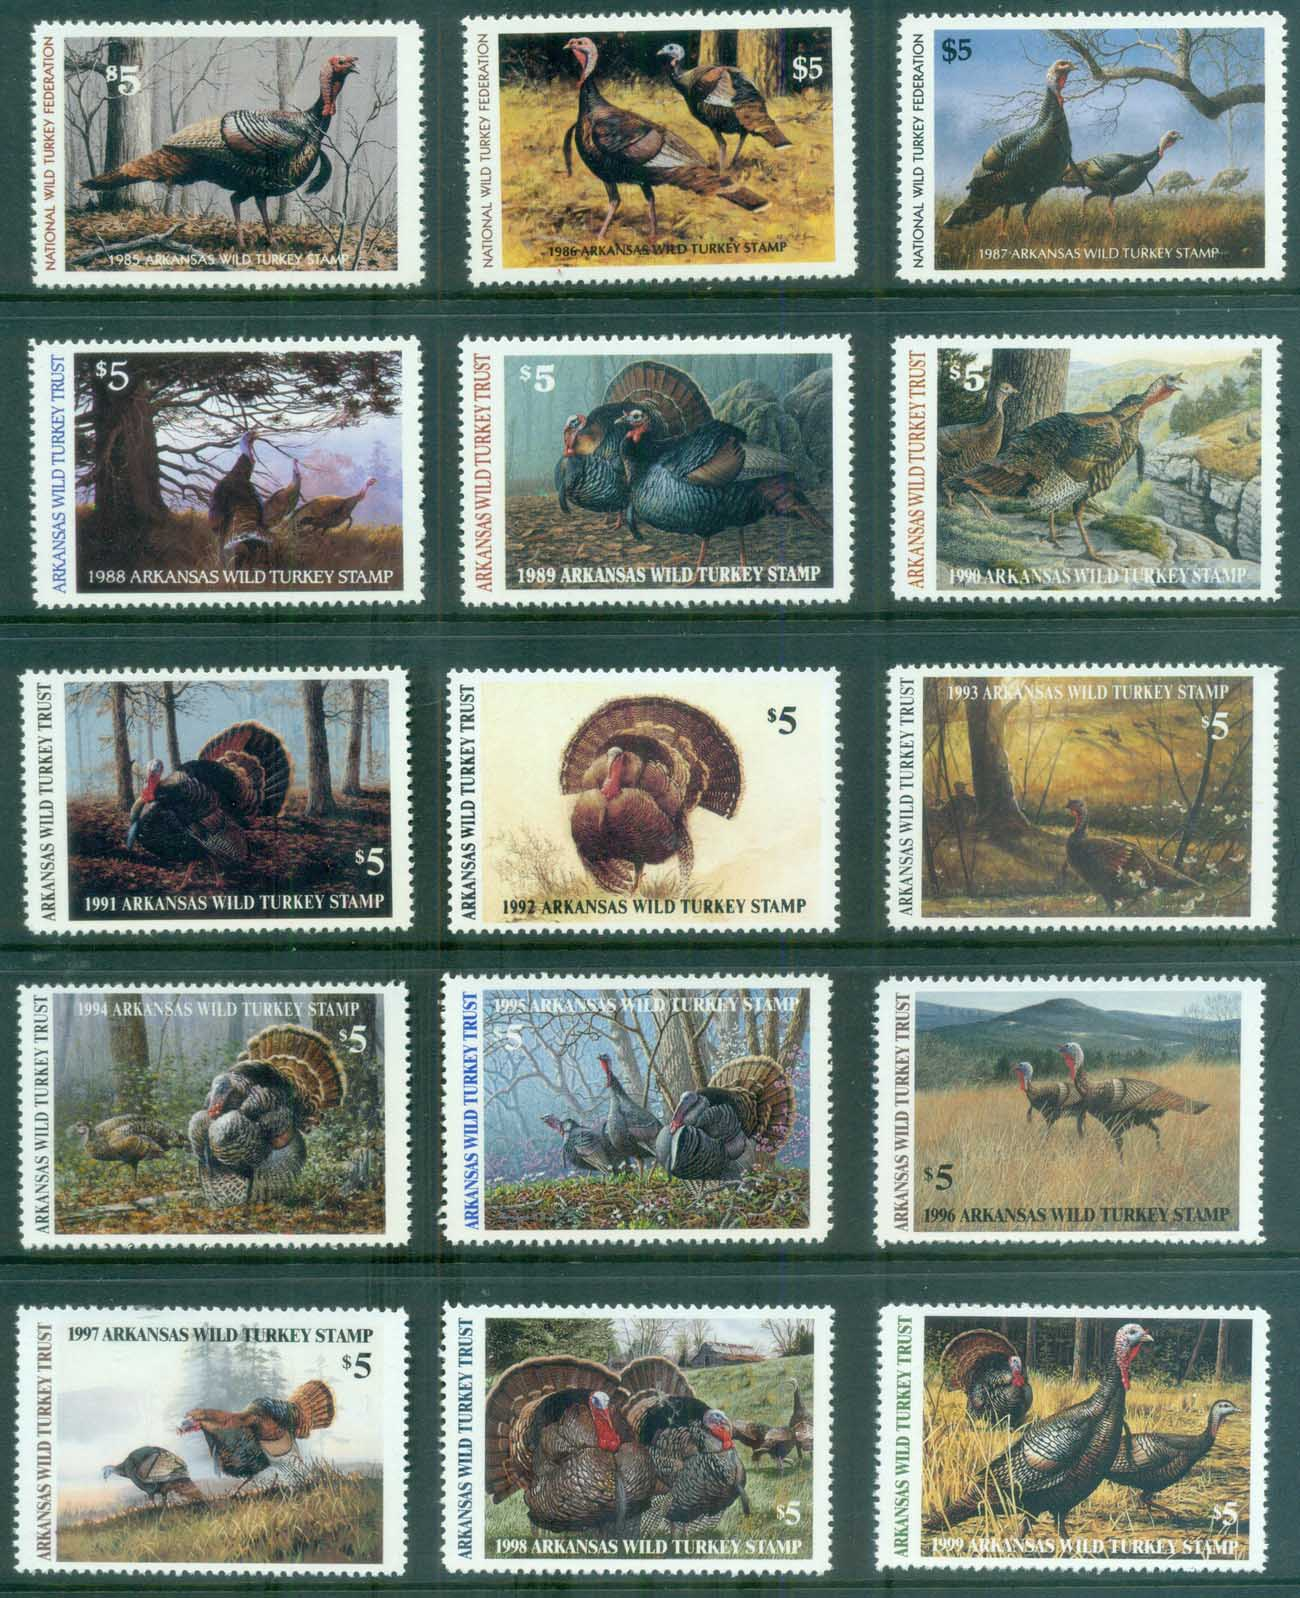 USA 1979-99 Wild Turkey Research Stamps MUH